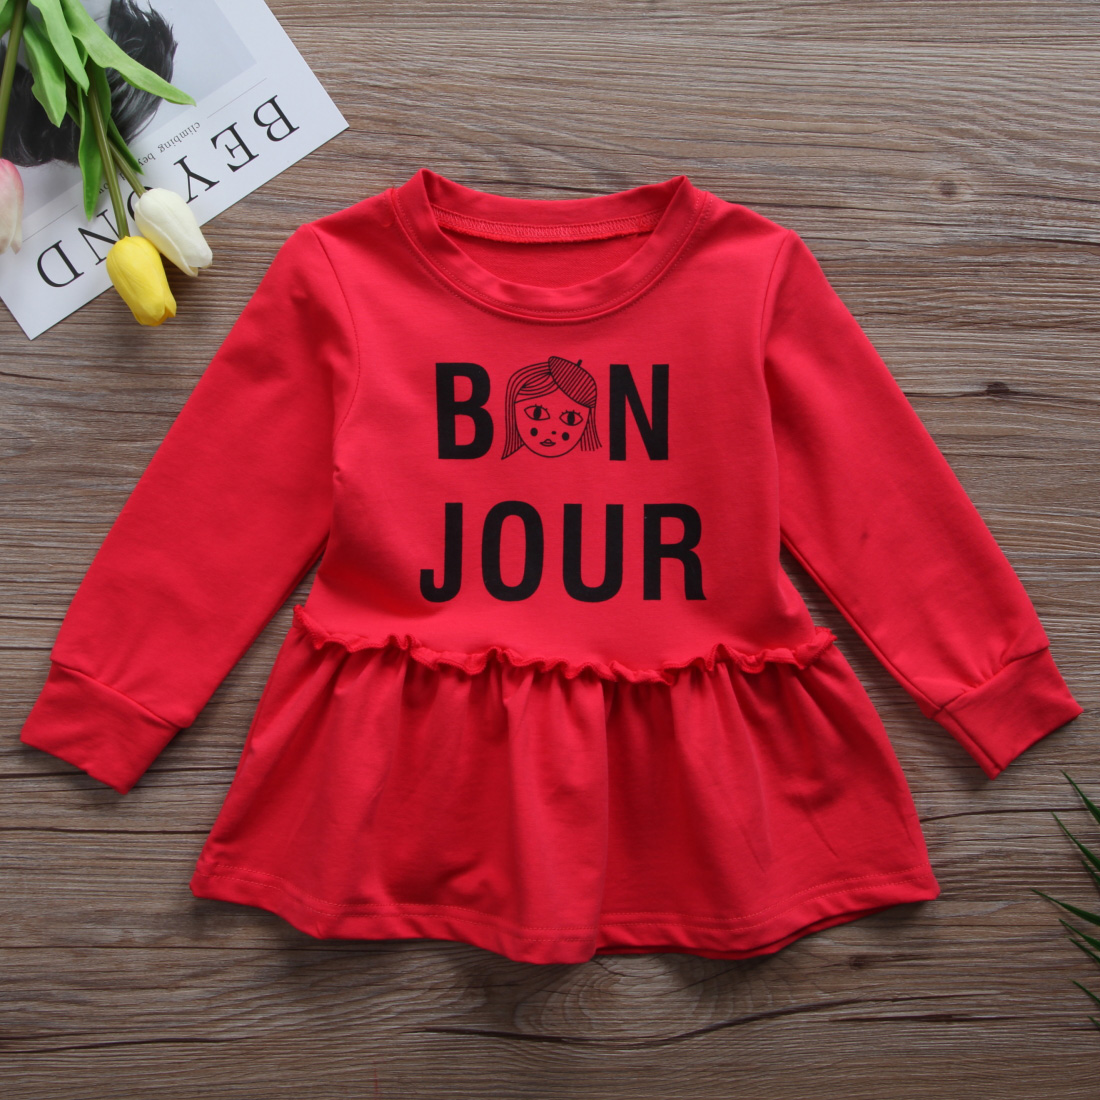 Cute Kids Girl Letters Print Dresses Autumn Long Sleeve Cotton Princess Party Dress Ruffles Girls Dress Clothes Pink red girls dress sweet red long sleeve princess dress high quality cotton party dresses cute kids clothes for girl children clothing